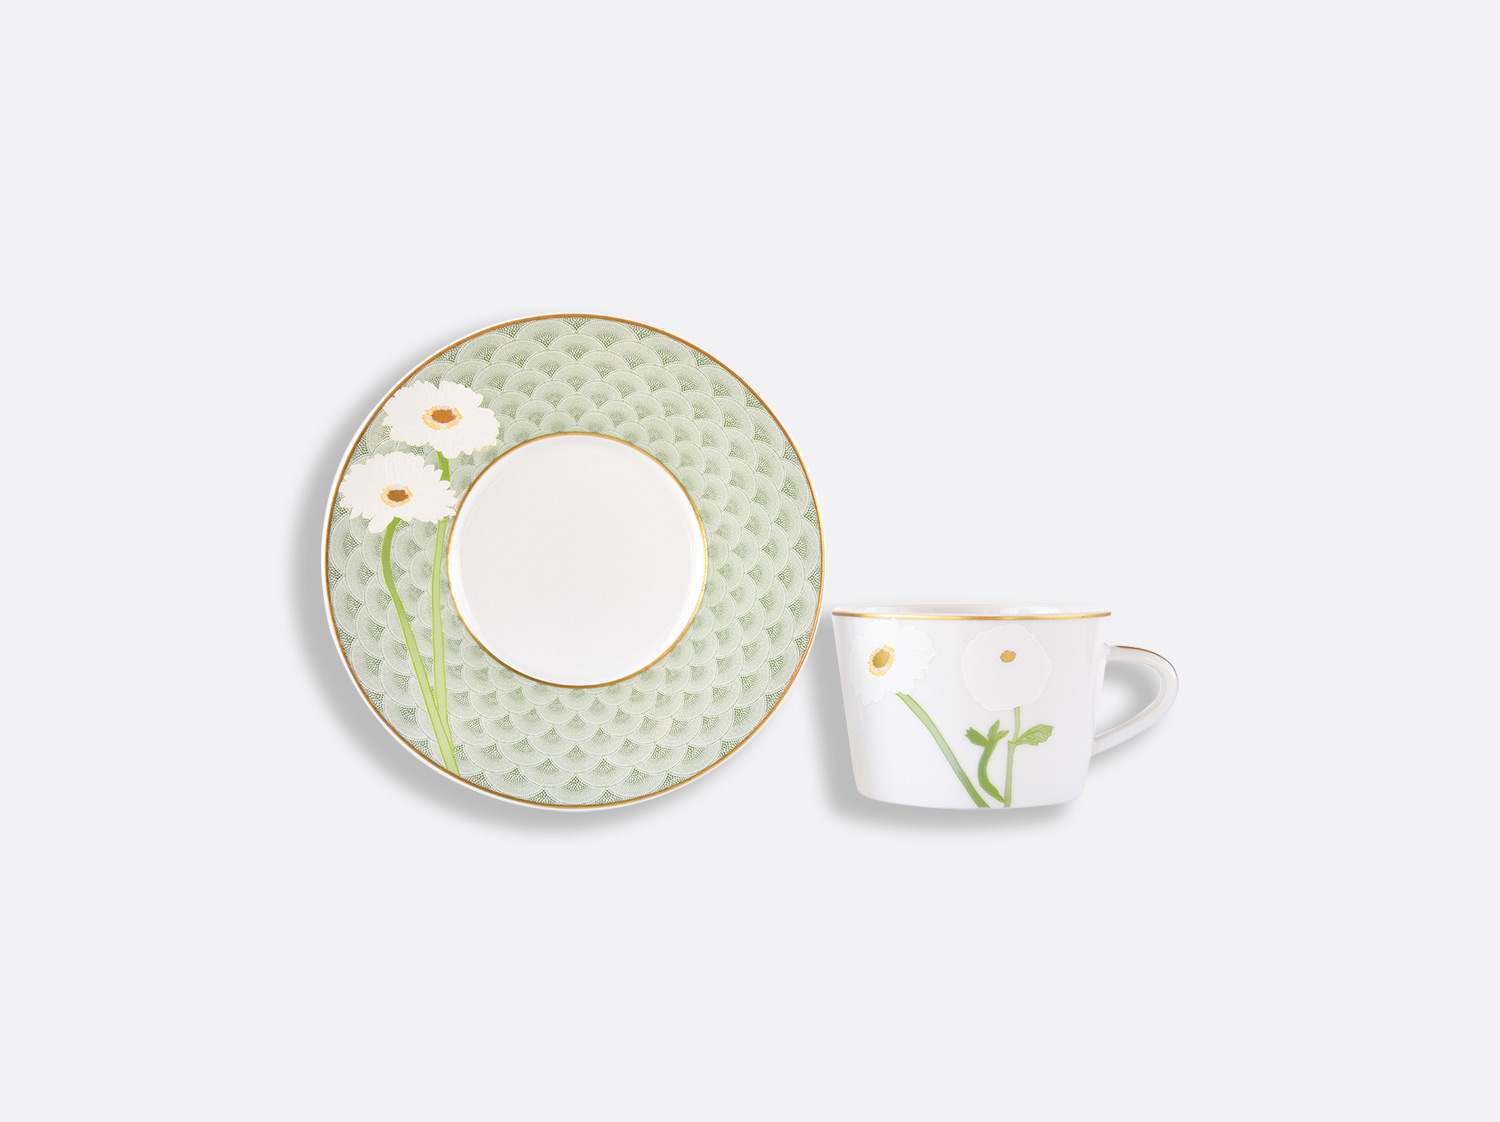 China Tea cup and saucer 5 oz of the collection PRAIANA | Bernardaud